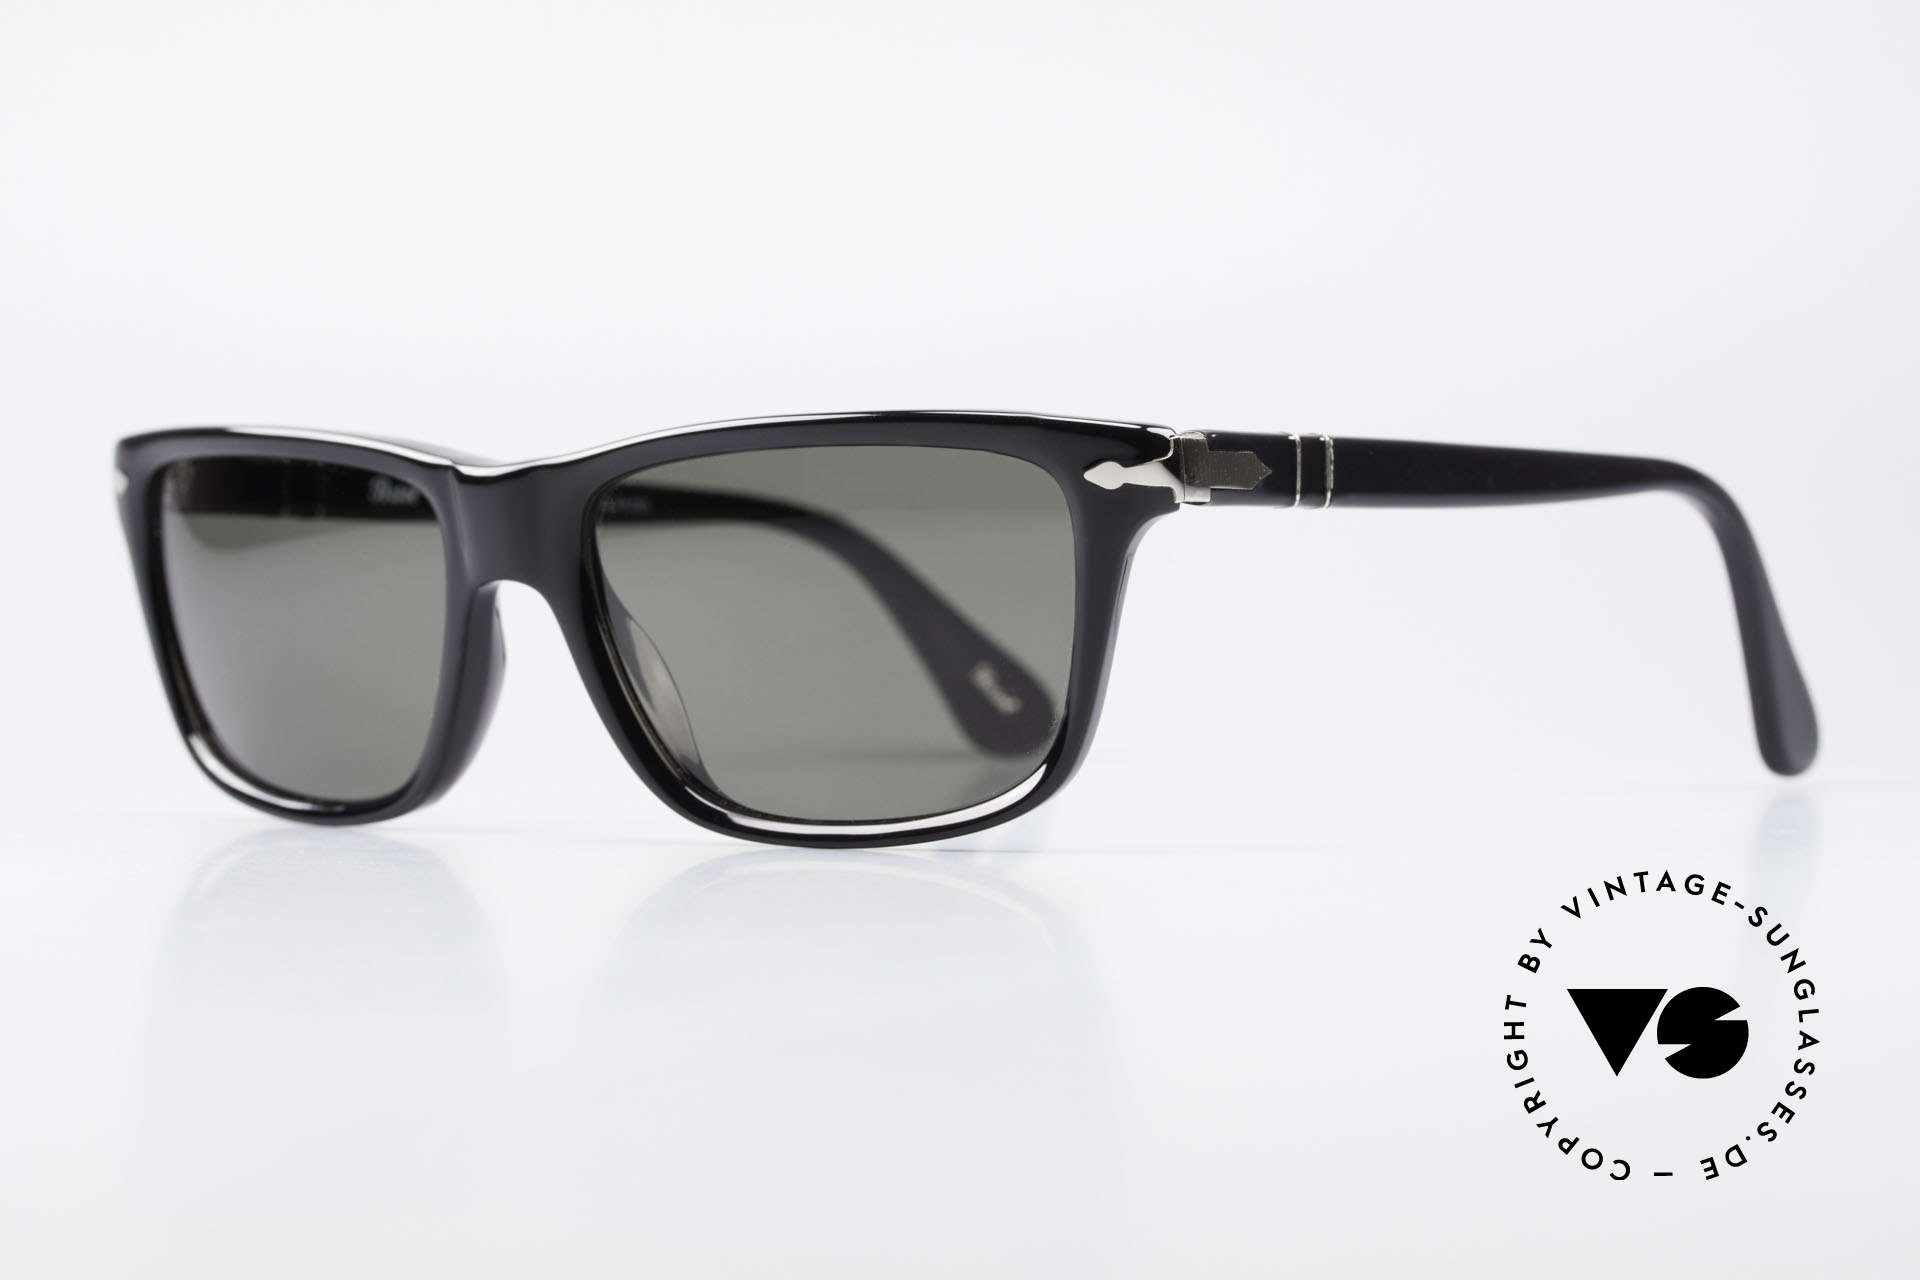 Persol 3026 Classic Sunglasses Polarized, polarized mineral lenses (100% UV protection), Made for Men and Women